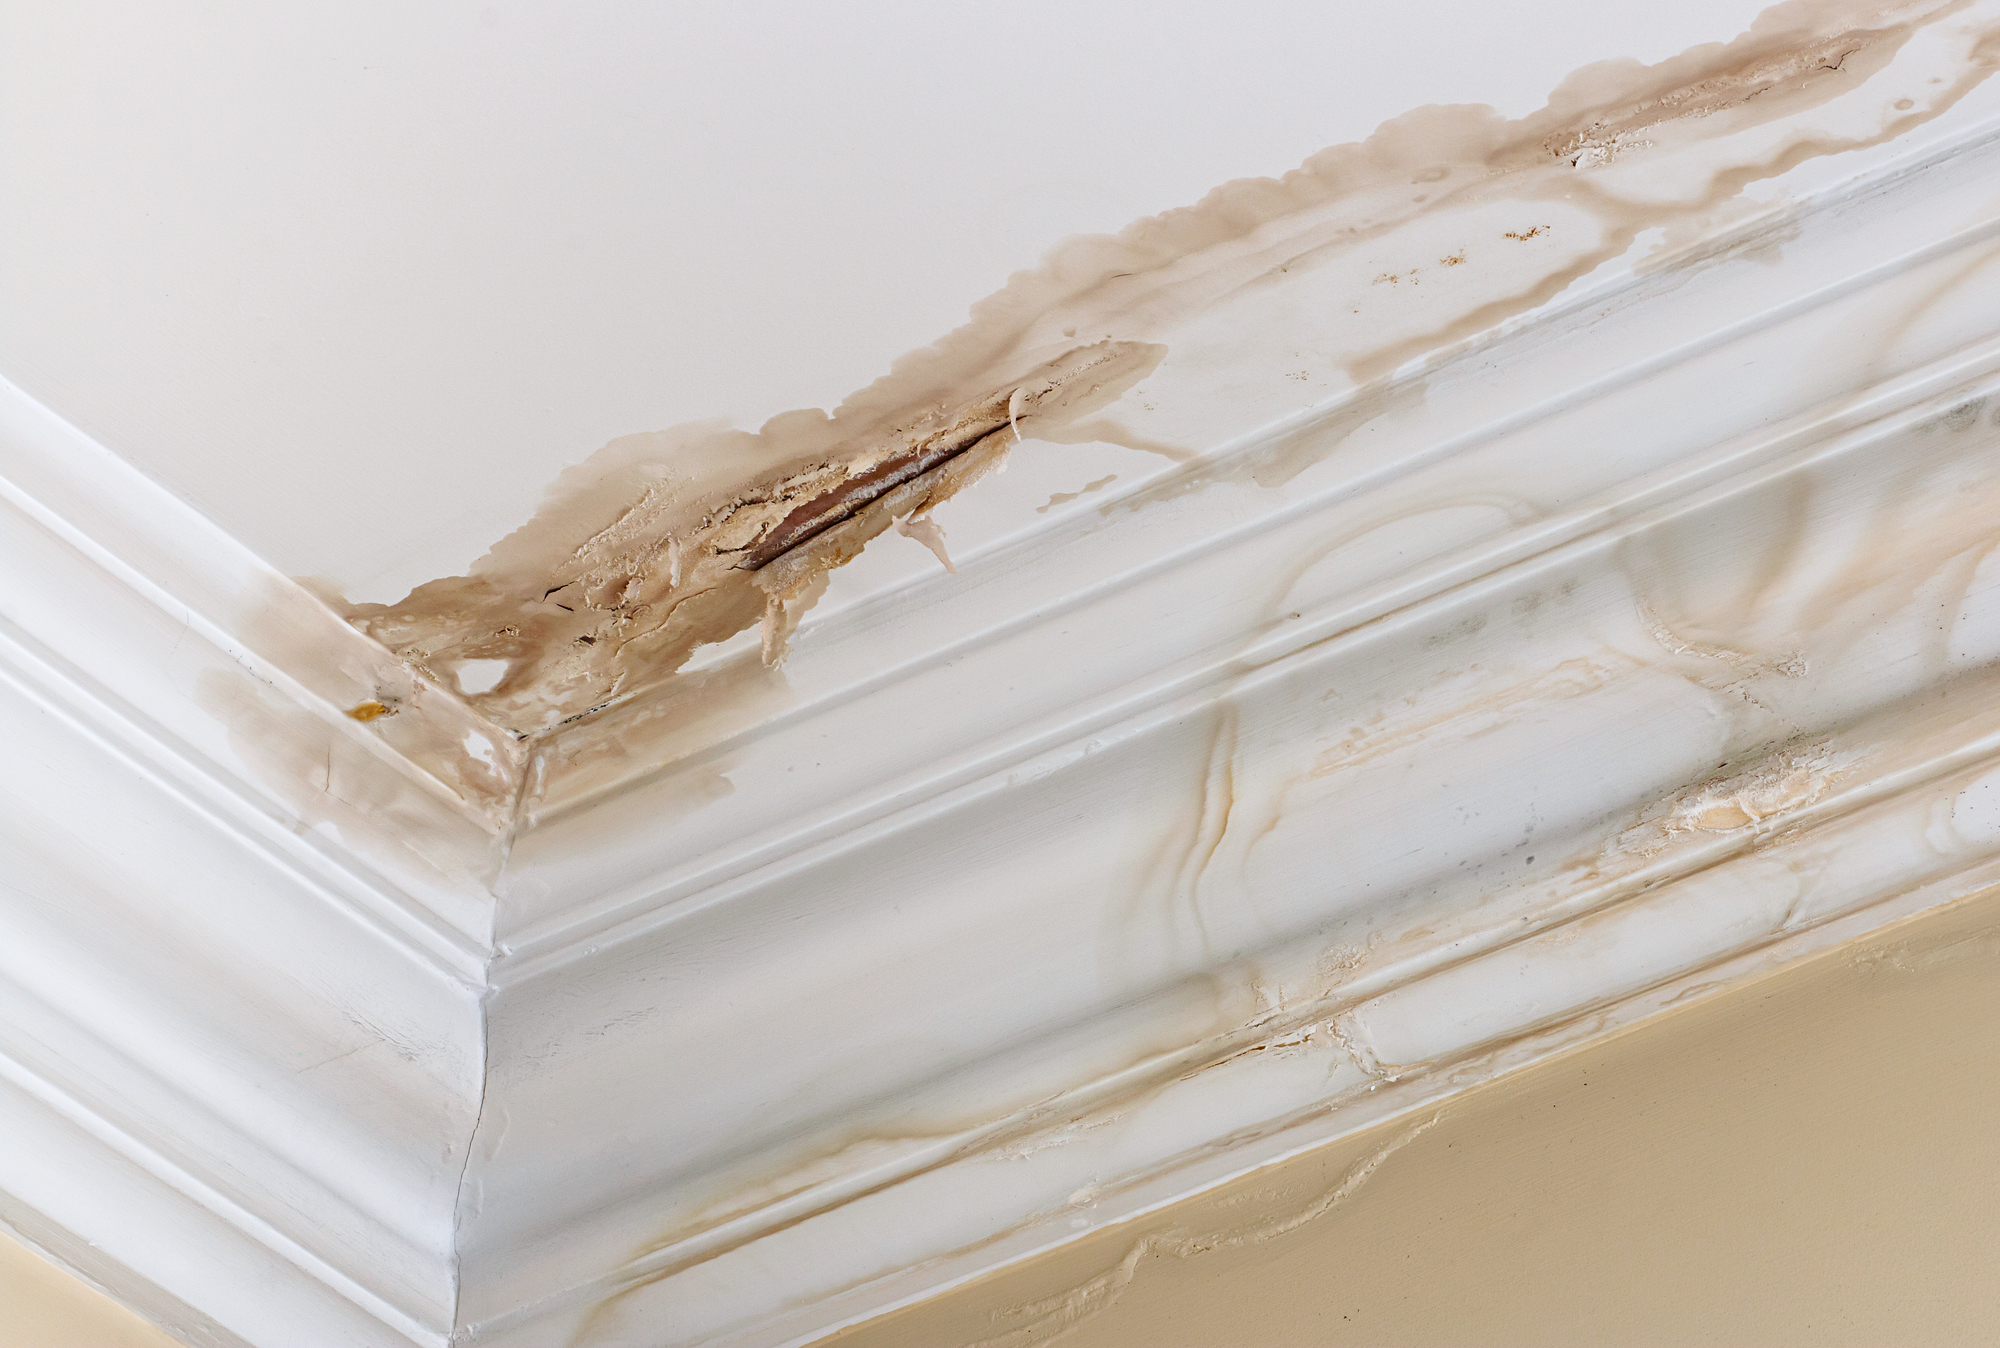 Staining and peeling paint on a ceiling as a result of water damage from a roof leak